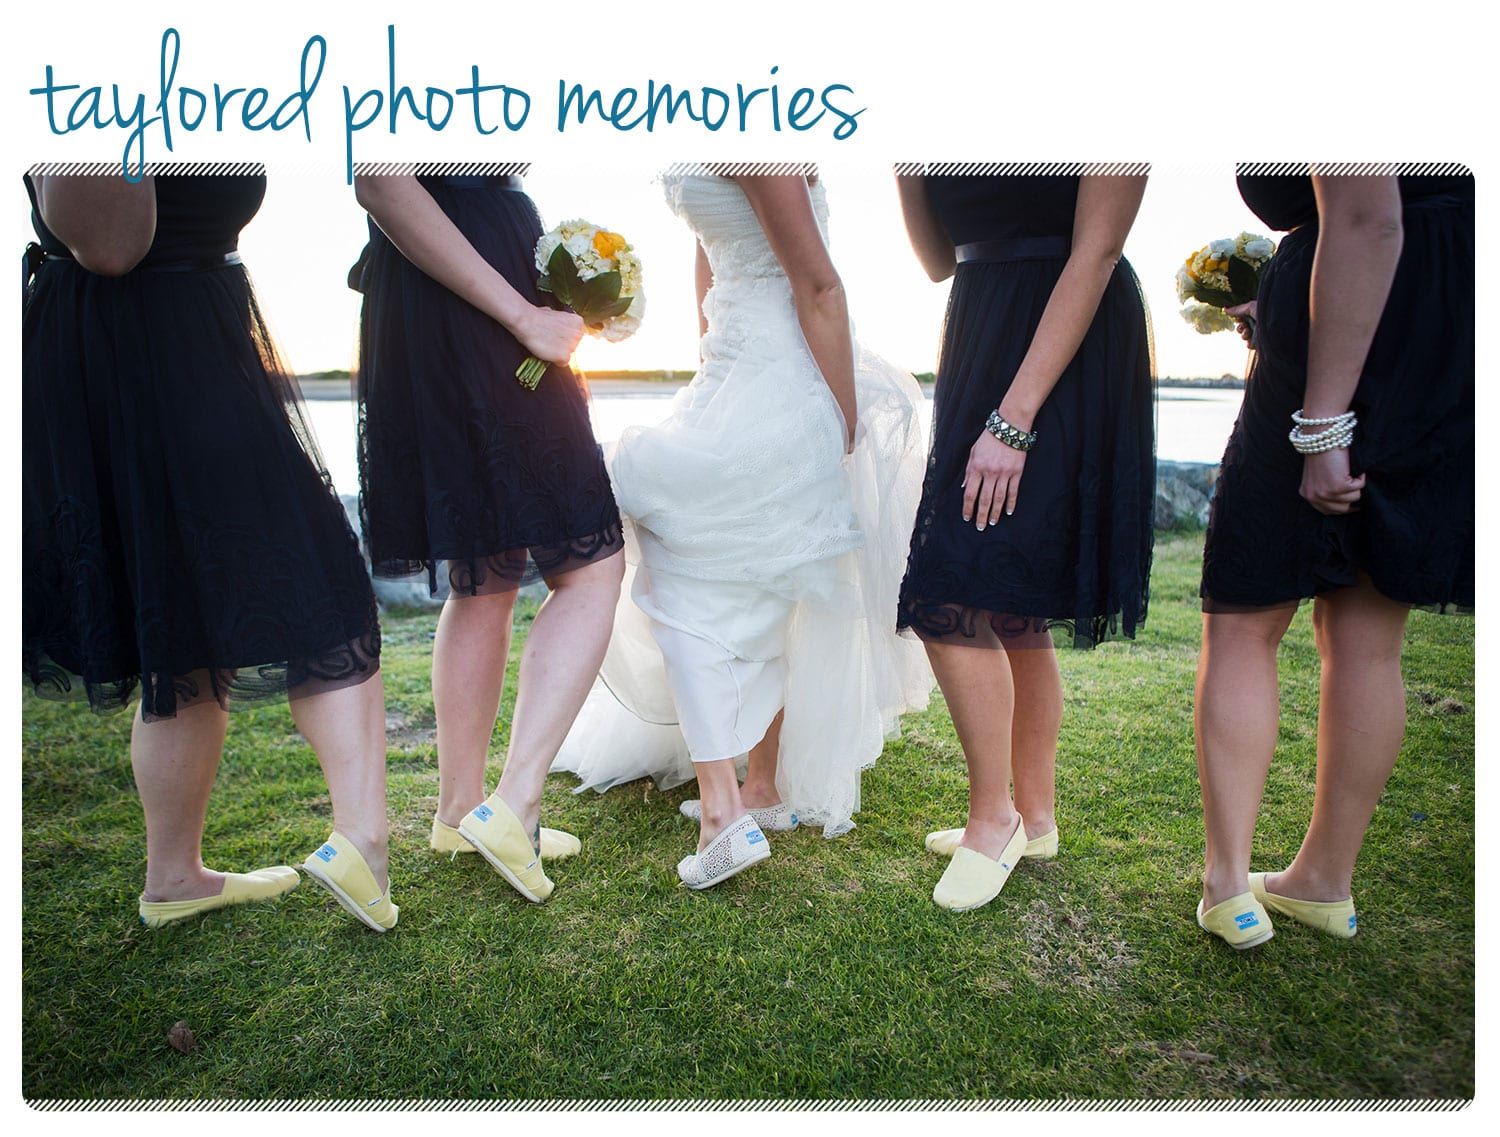 Catholic Wedding Ceremony in San Diego. Photos at Balboa Park & Mission Bay. Reception at Handerly Hotel